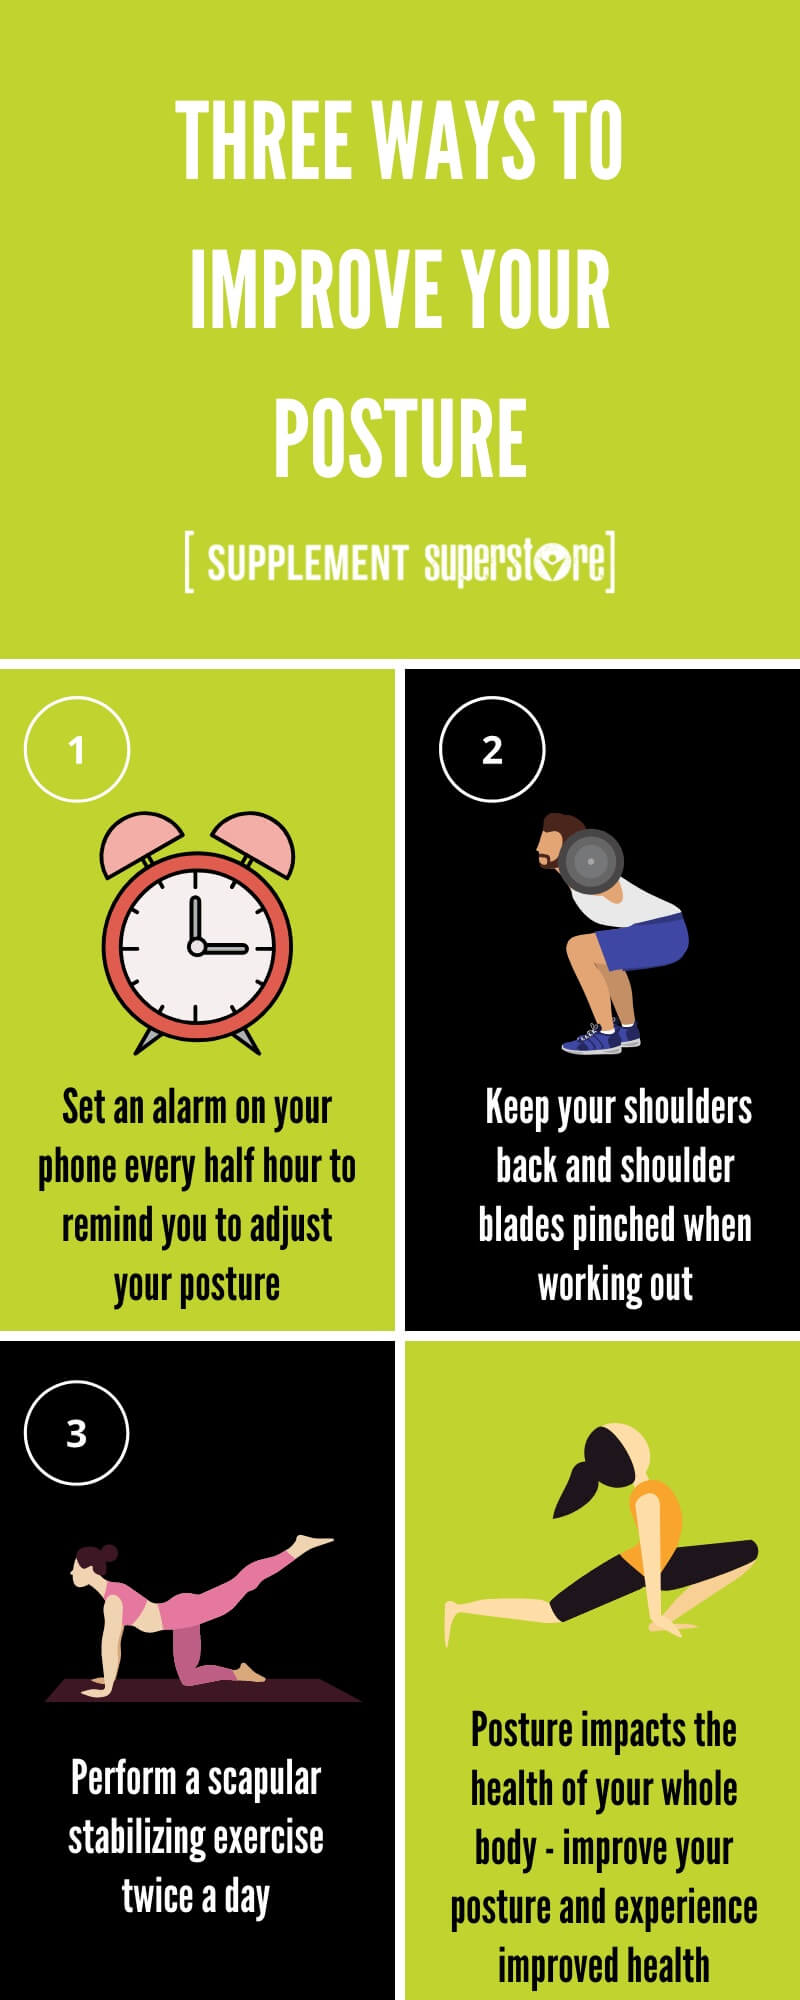 3 Tips To Help Improve Your Posture Infographic